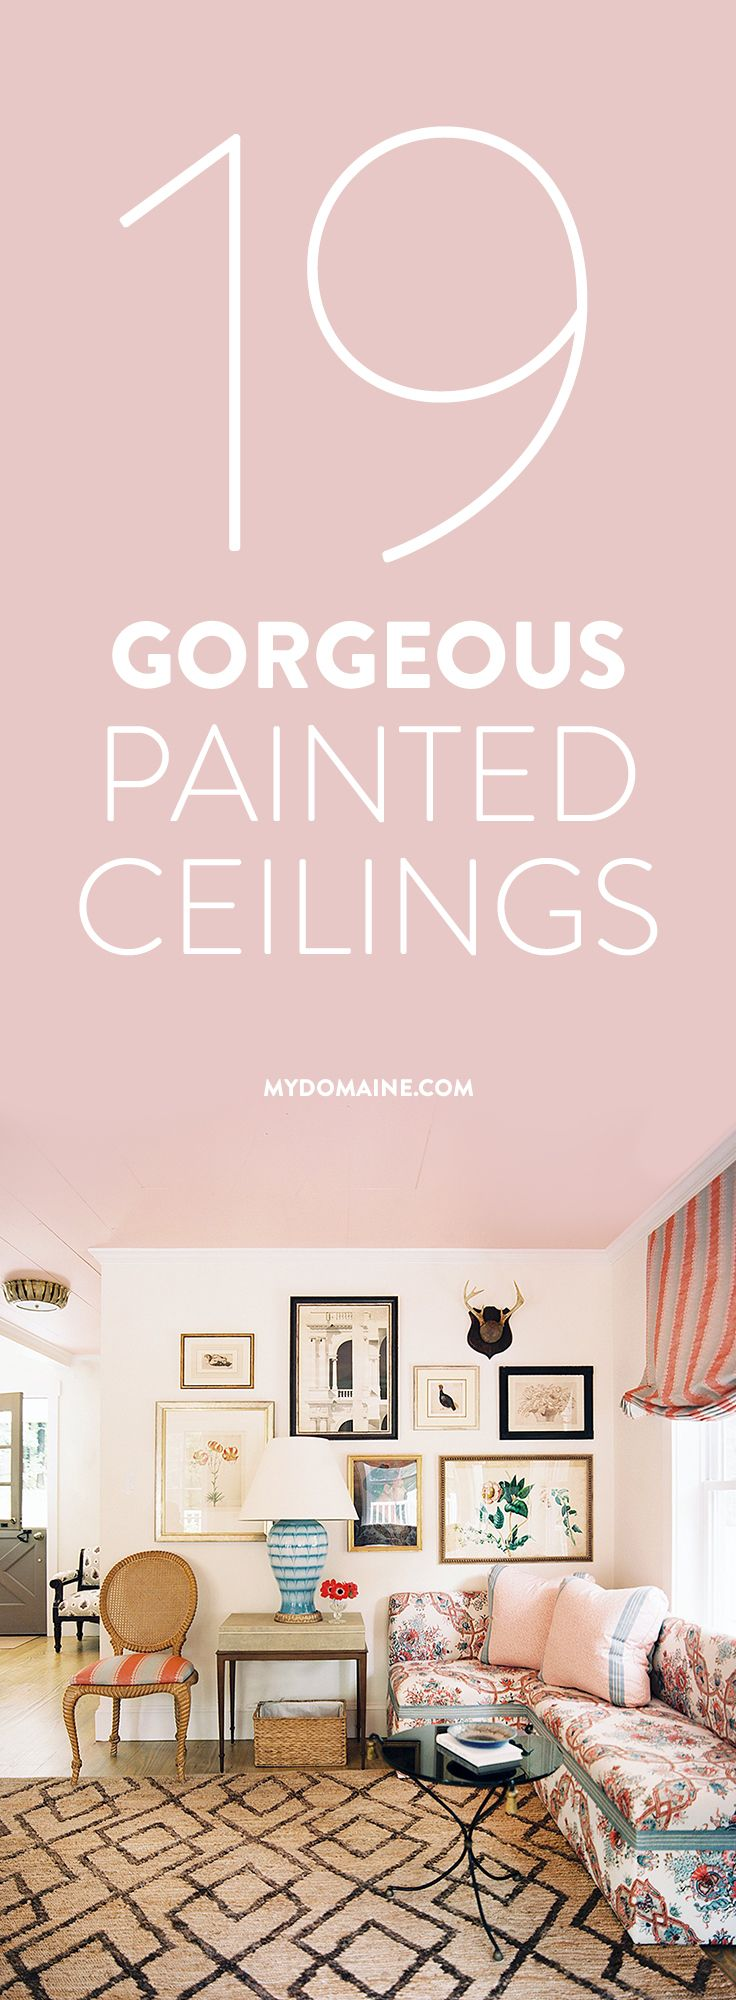 Make a statement on your ceiling! Here are some amazing examples to inspire you